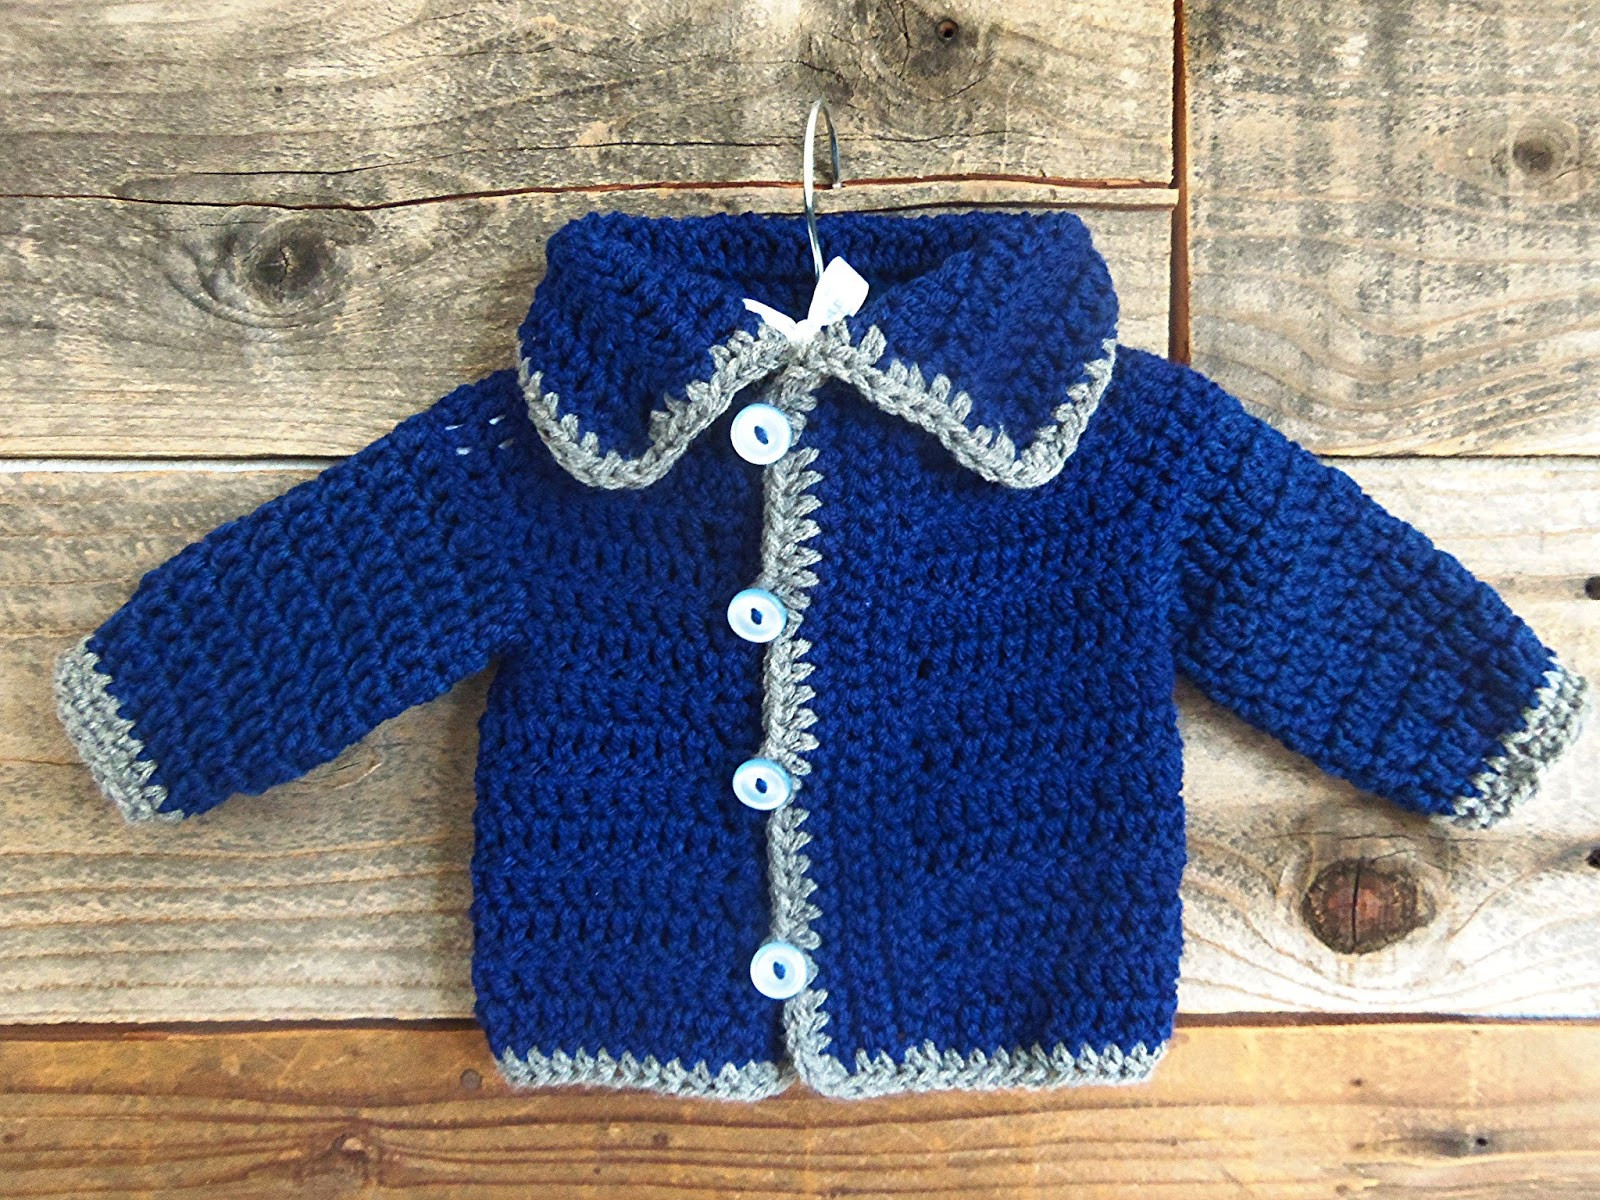 Crochet Baby Sweater New 3squeezes Easy Crochet Baby Sweater Of Charming 44 Images Crochet Baby Sweater